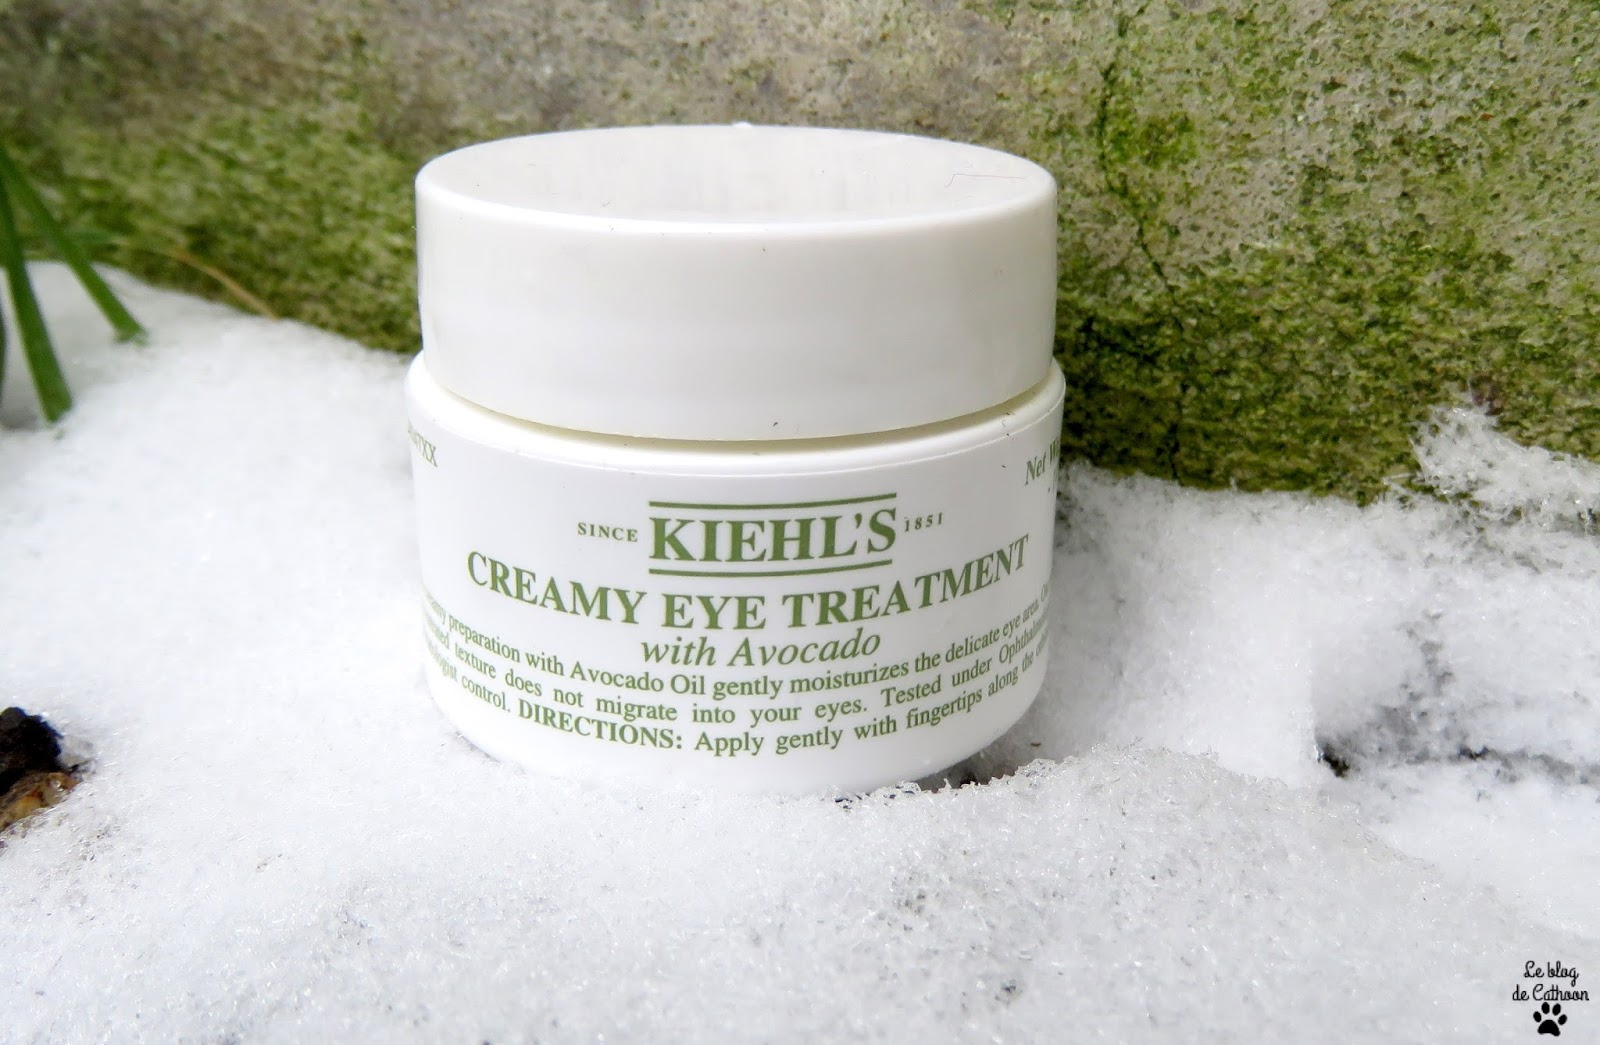 Creamy Eye Treatment with Avocado - Kiehl's